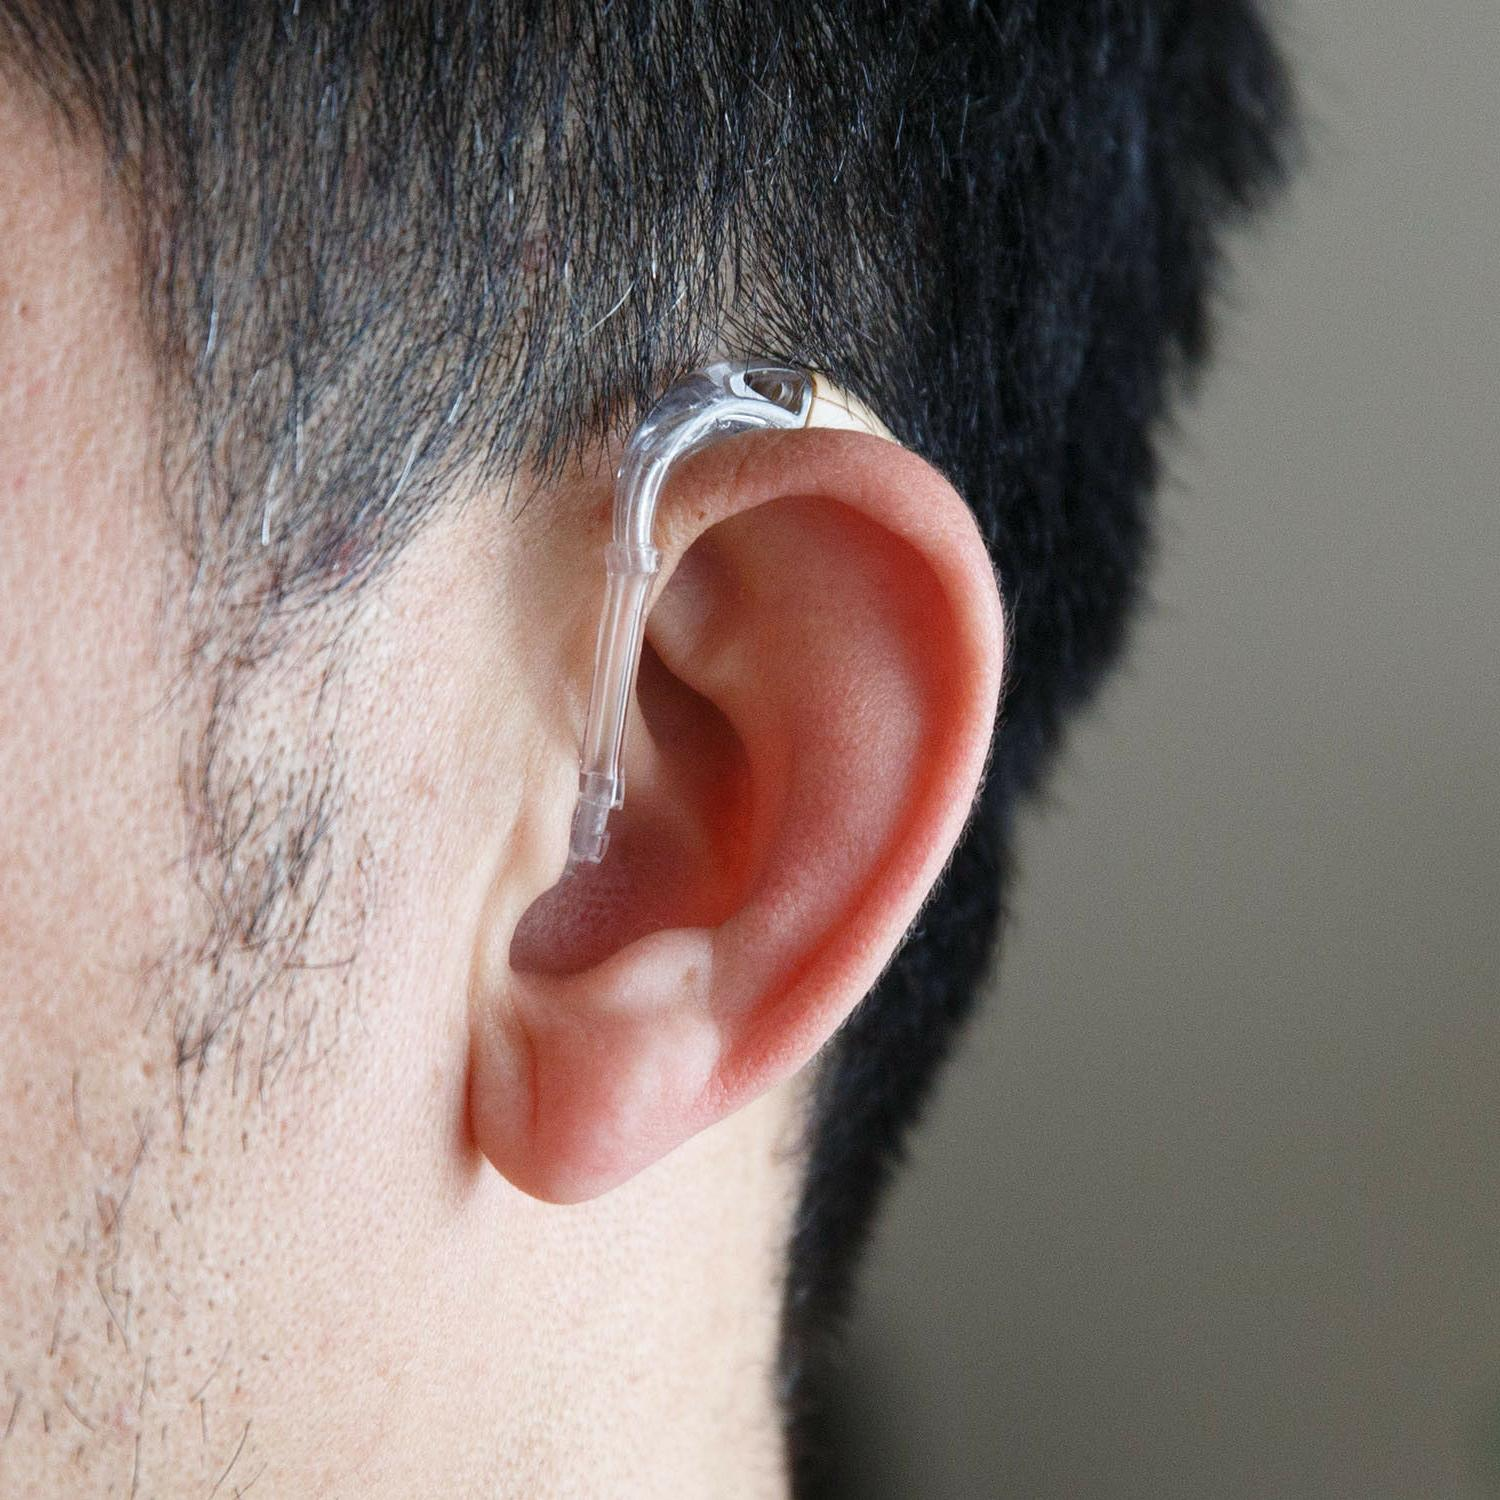 R&L Behind and Lightweight, both ears